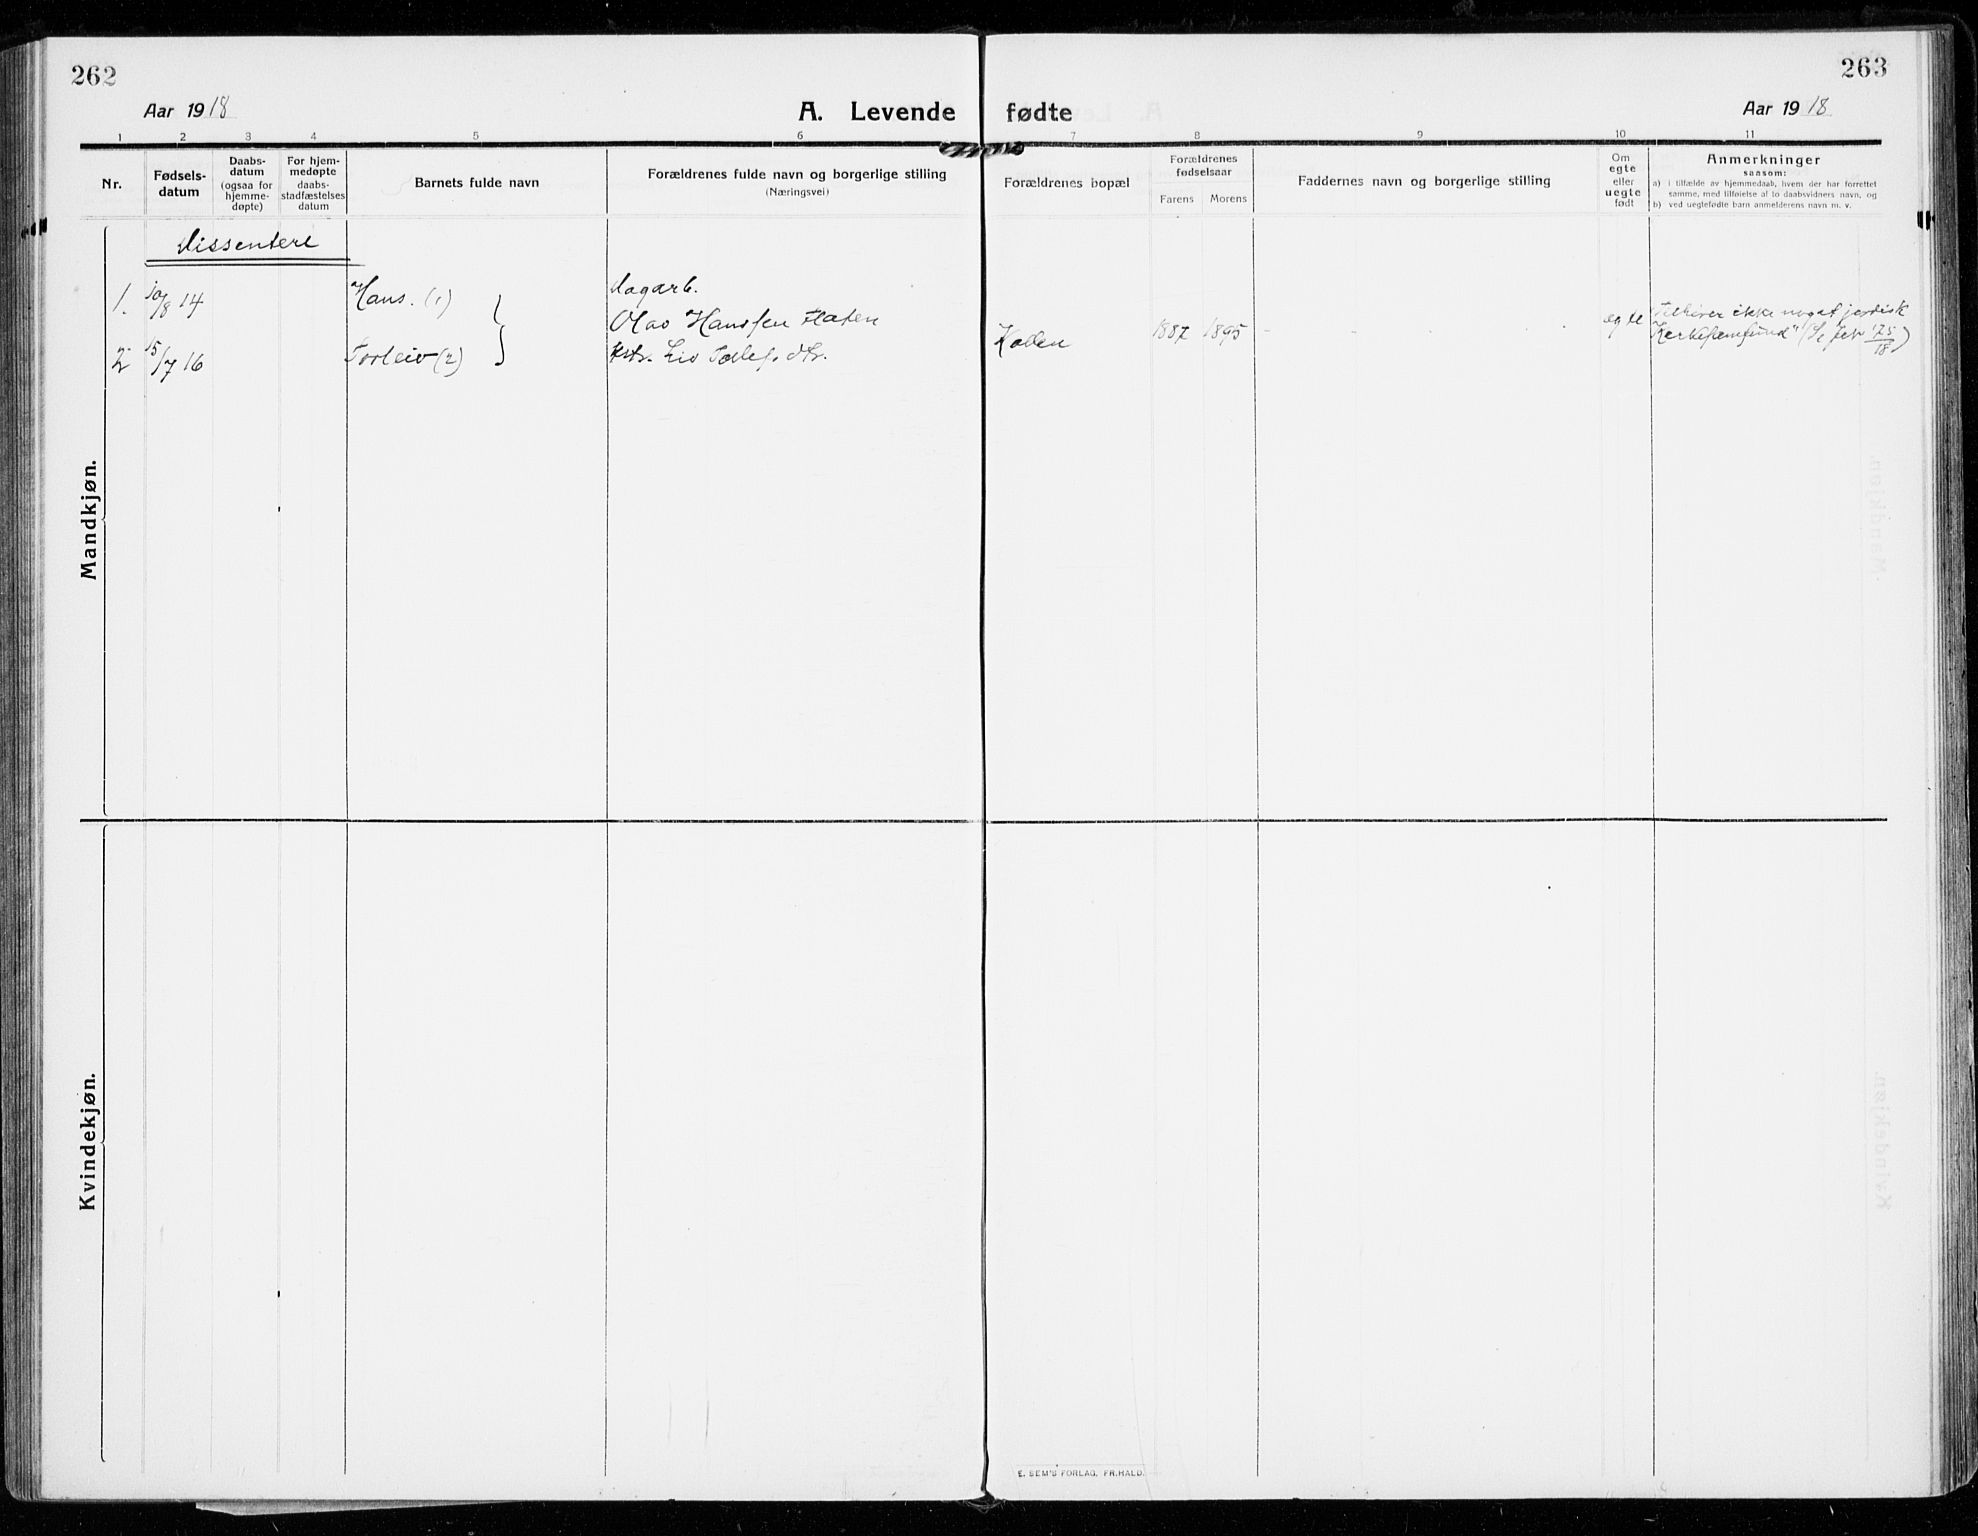 SAKO, Strømsgodset kirkebøker, F/Fa/L0002: Parish register (official) no. 2, 1910-1920, p. 262-263